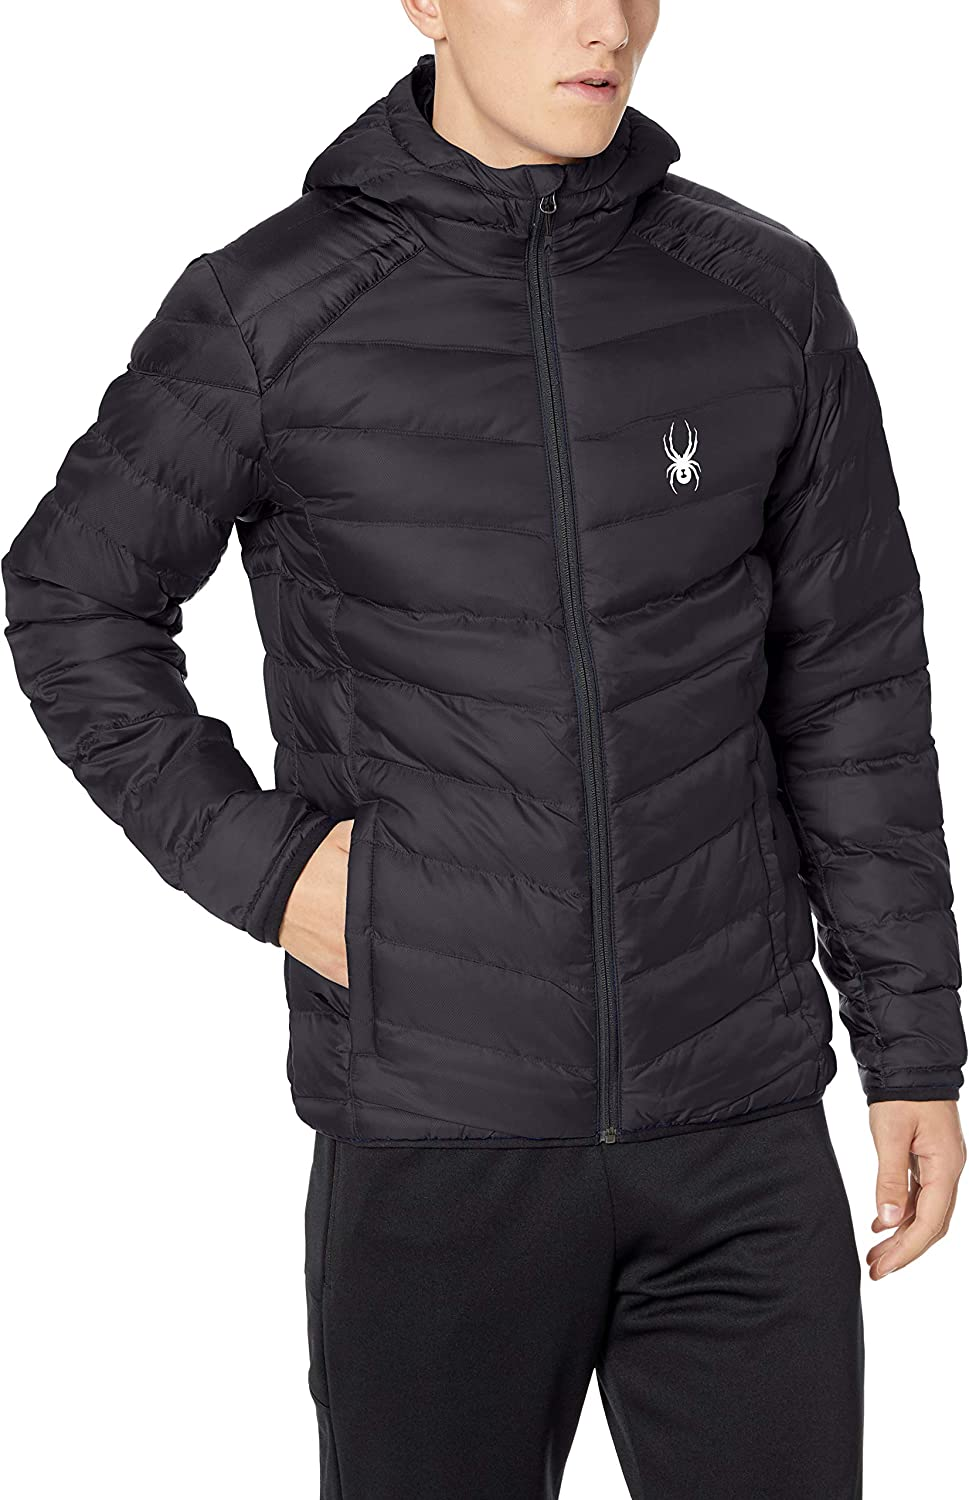 Black//Black Spyder Mens Geared Synthetic Down Jacket XX-Large